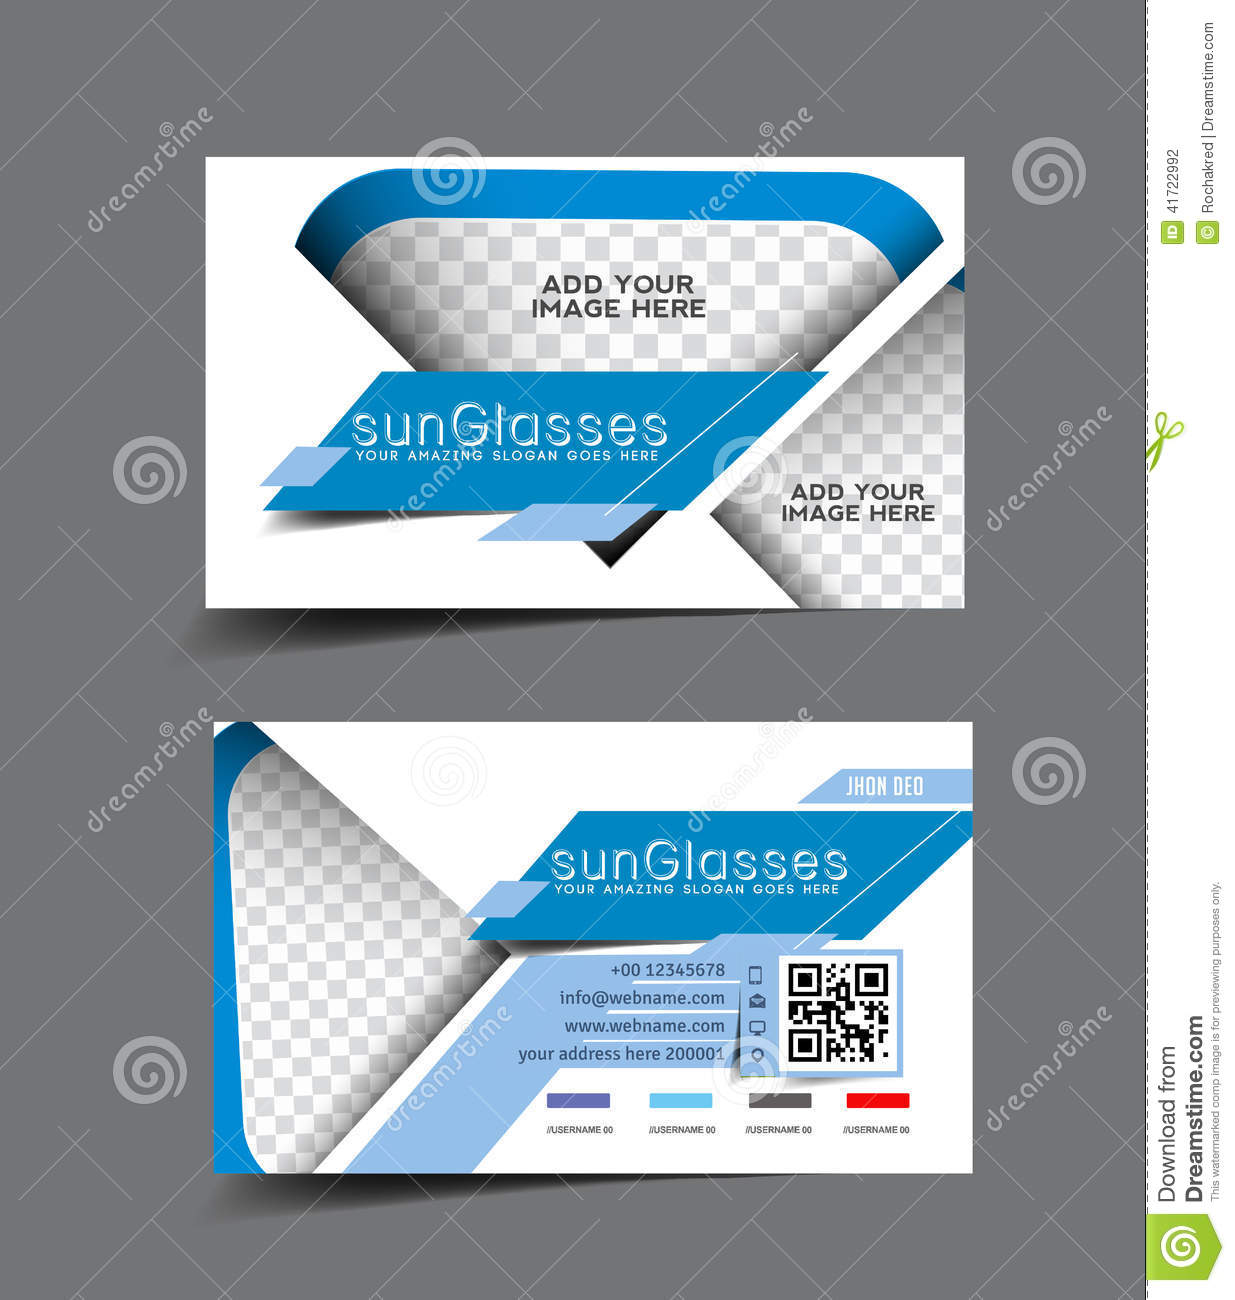 Sun glass store business card stock vector image 41722992 sun glass store business card magicingreecefo Choice Image